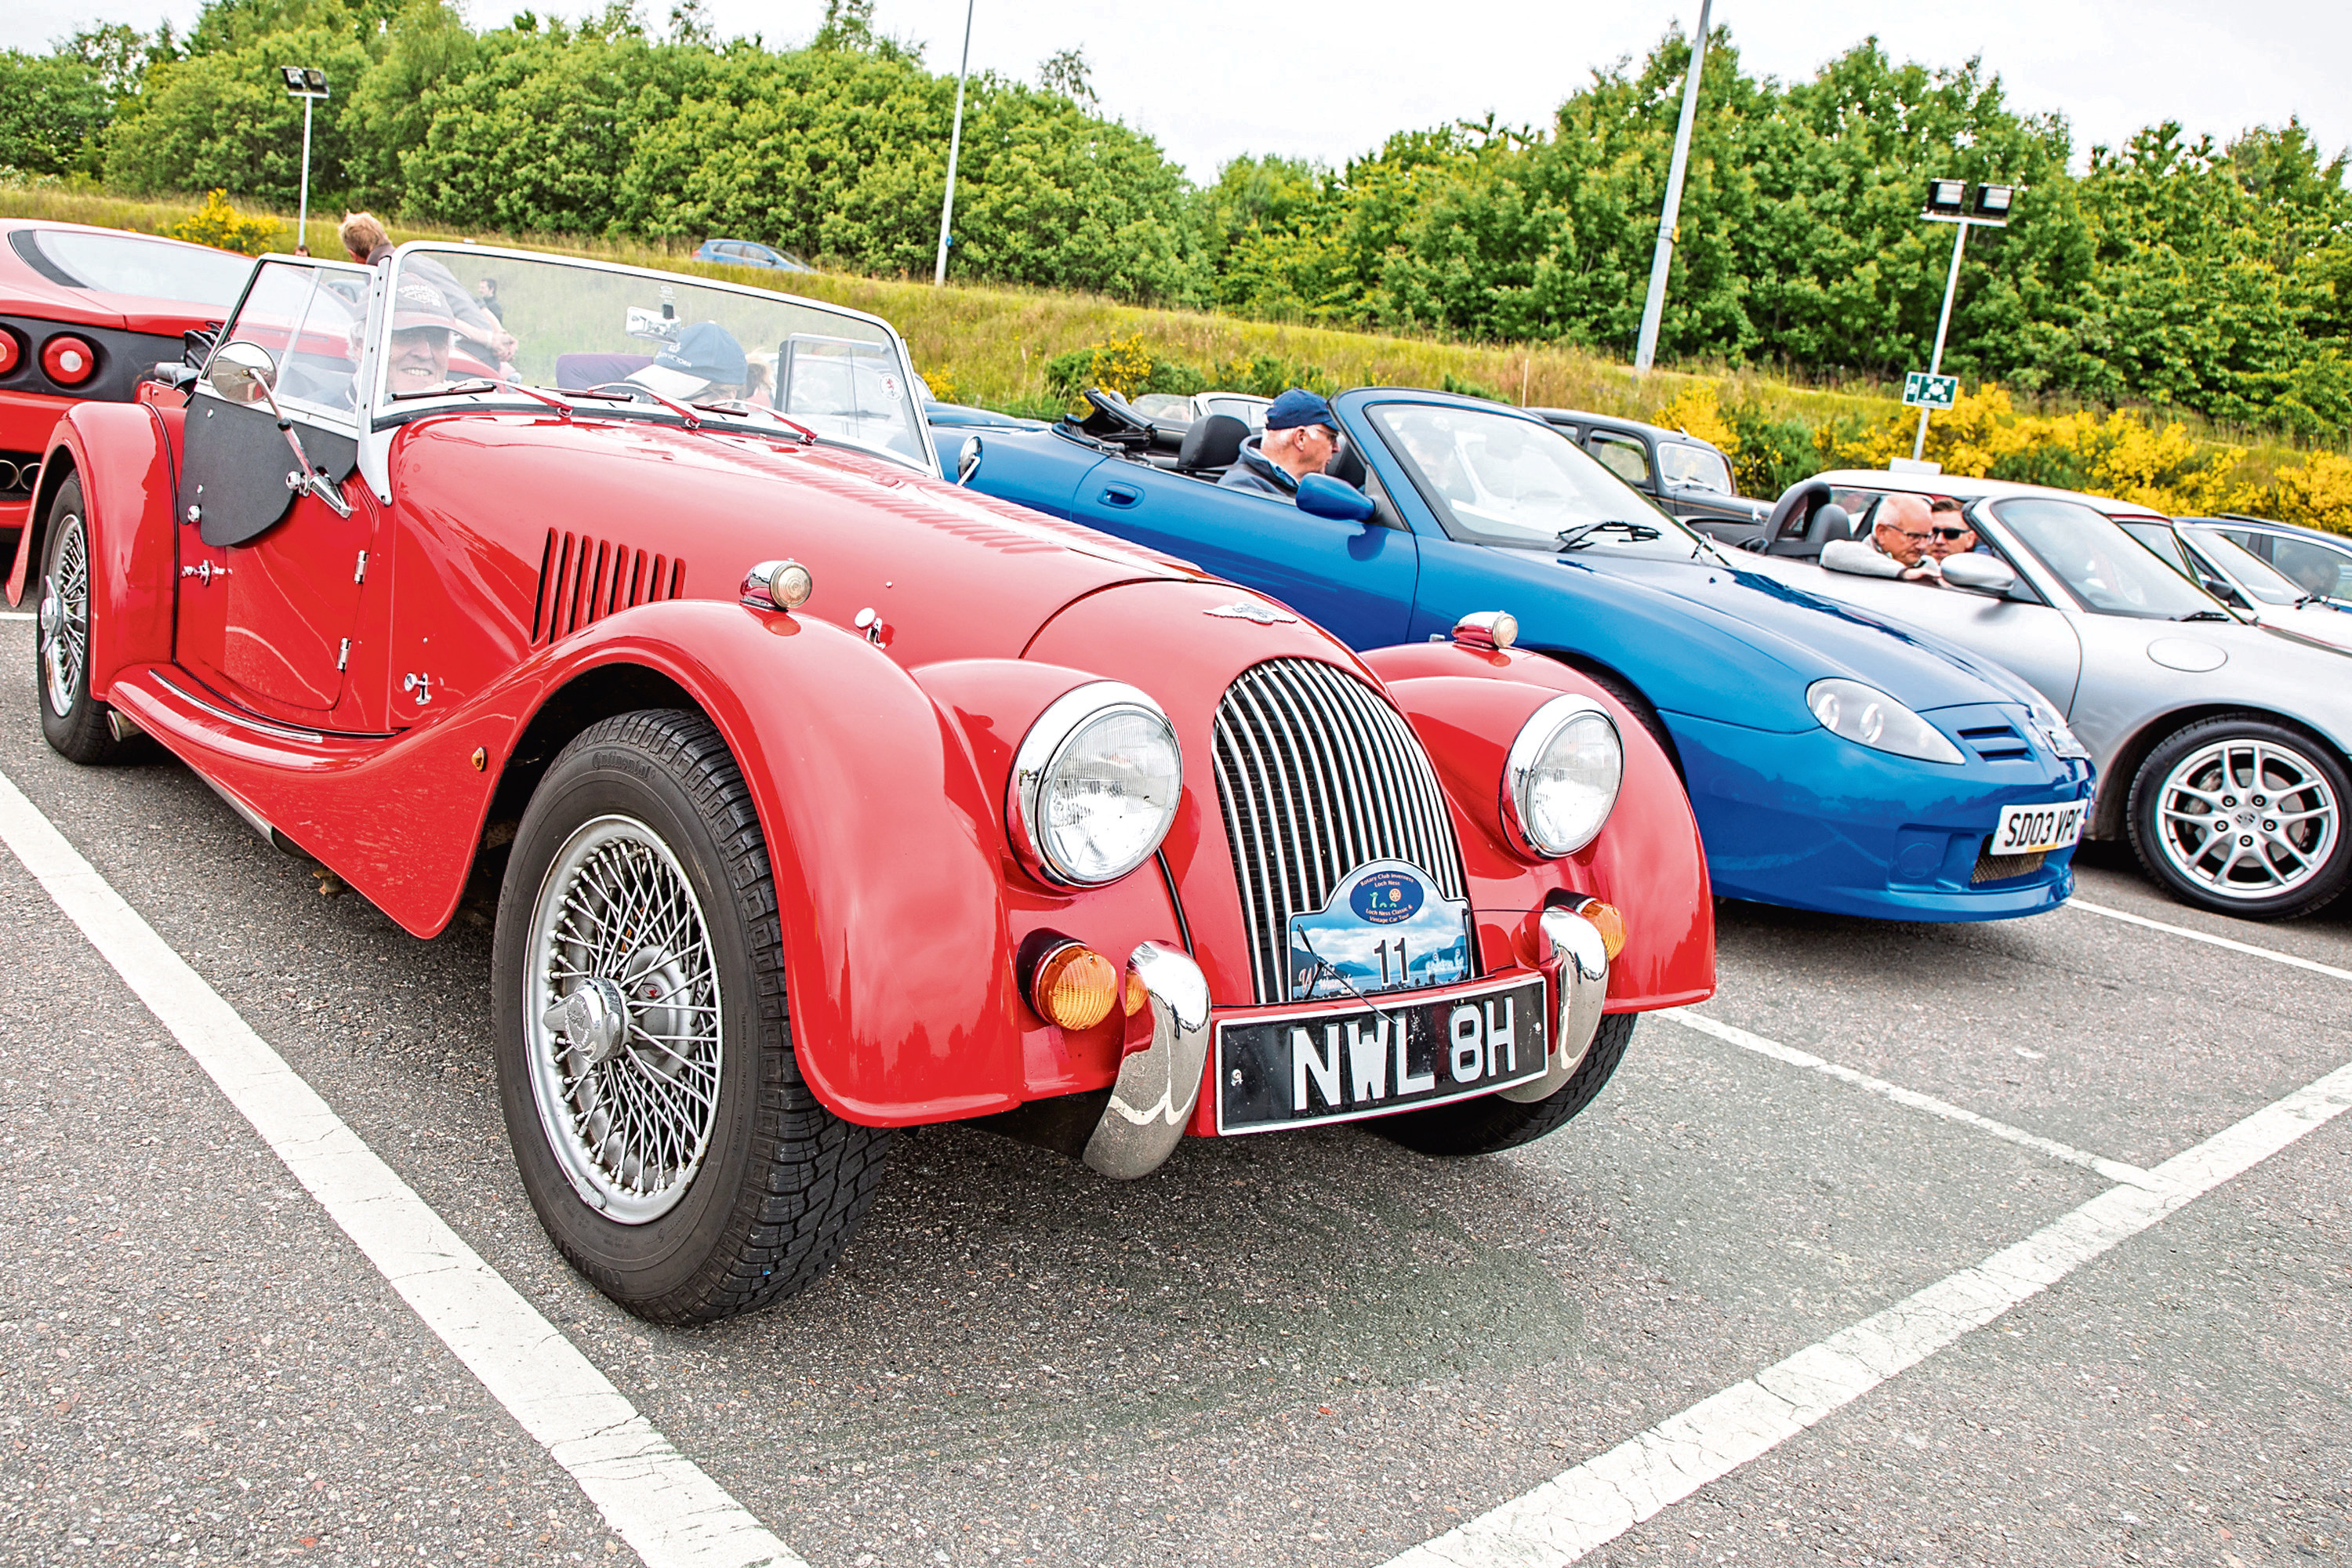 Classic cars line up before the start of the event